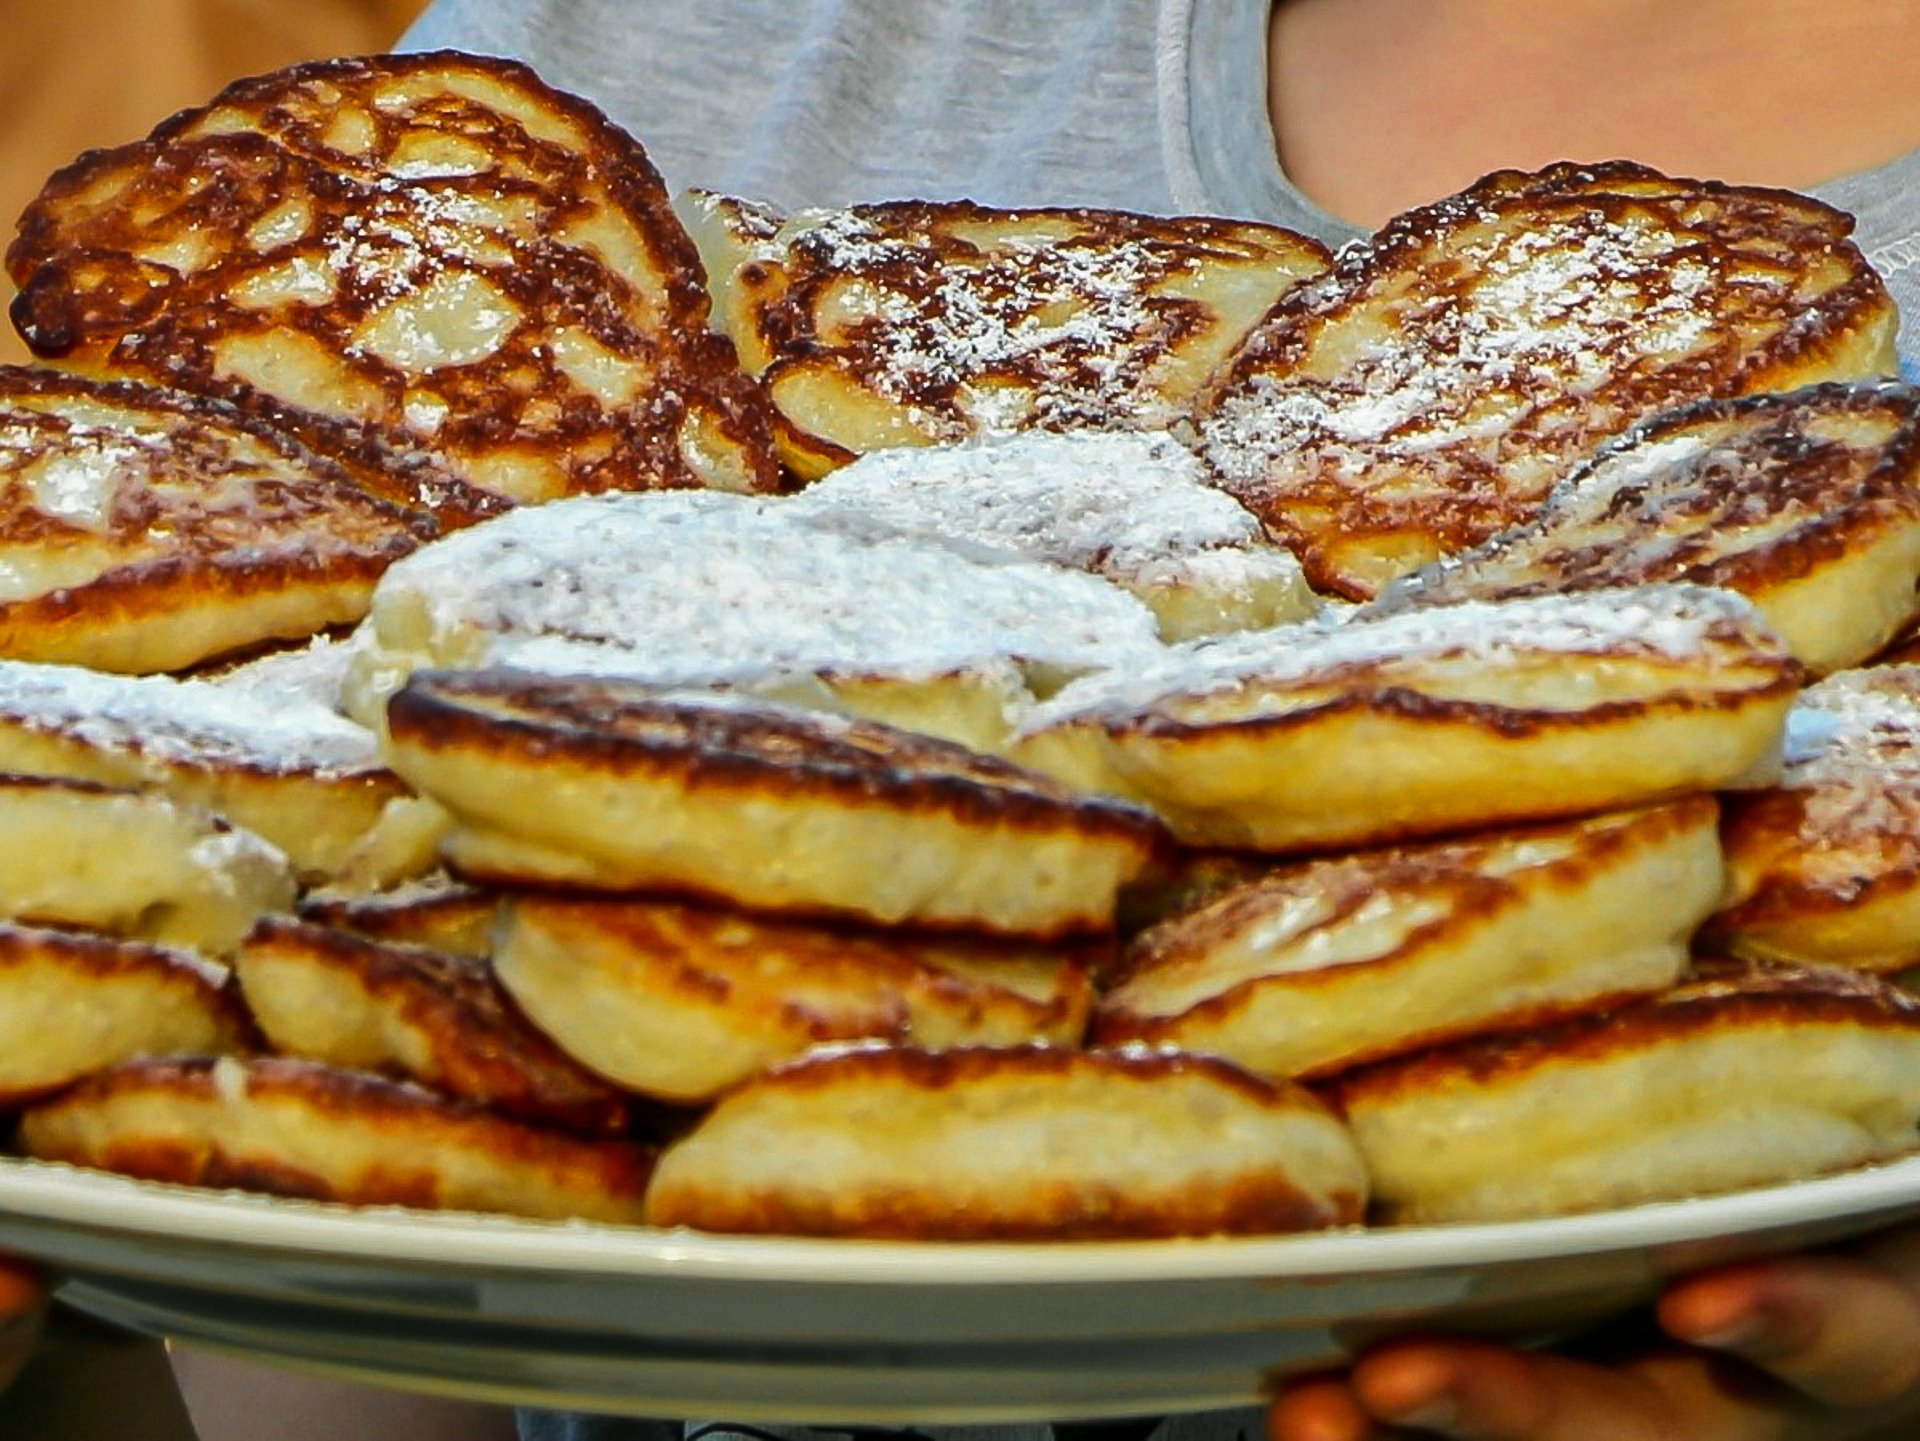 A plate of apple pancakes with sugar